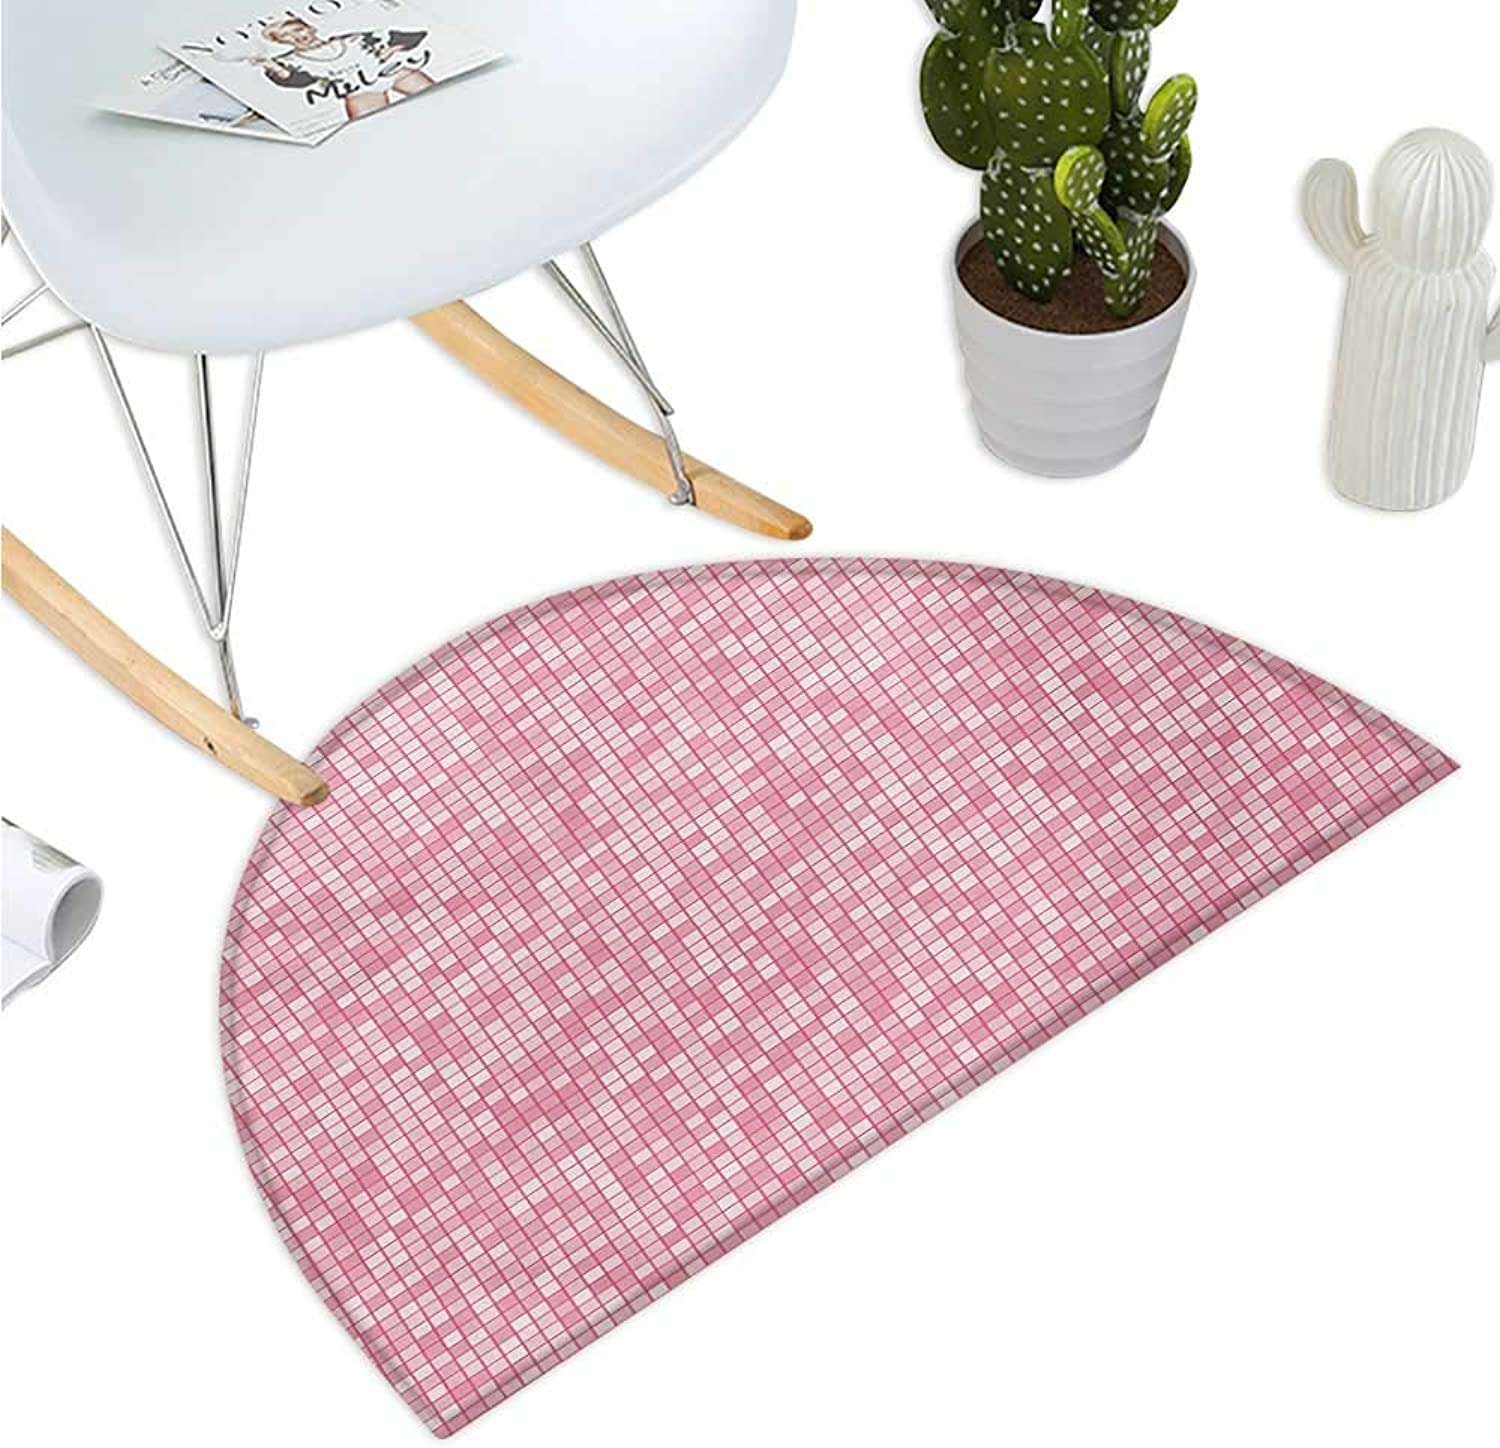 Pink and White Semicircular Cushion Gingham Style Mosaic Tile in Pink color Shades Modern Grid with Small Squares Entry Door Mat H 35.4  xD 53.1  Pale Pink